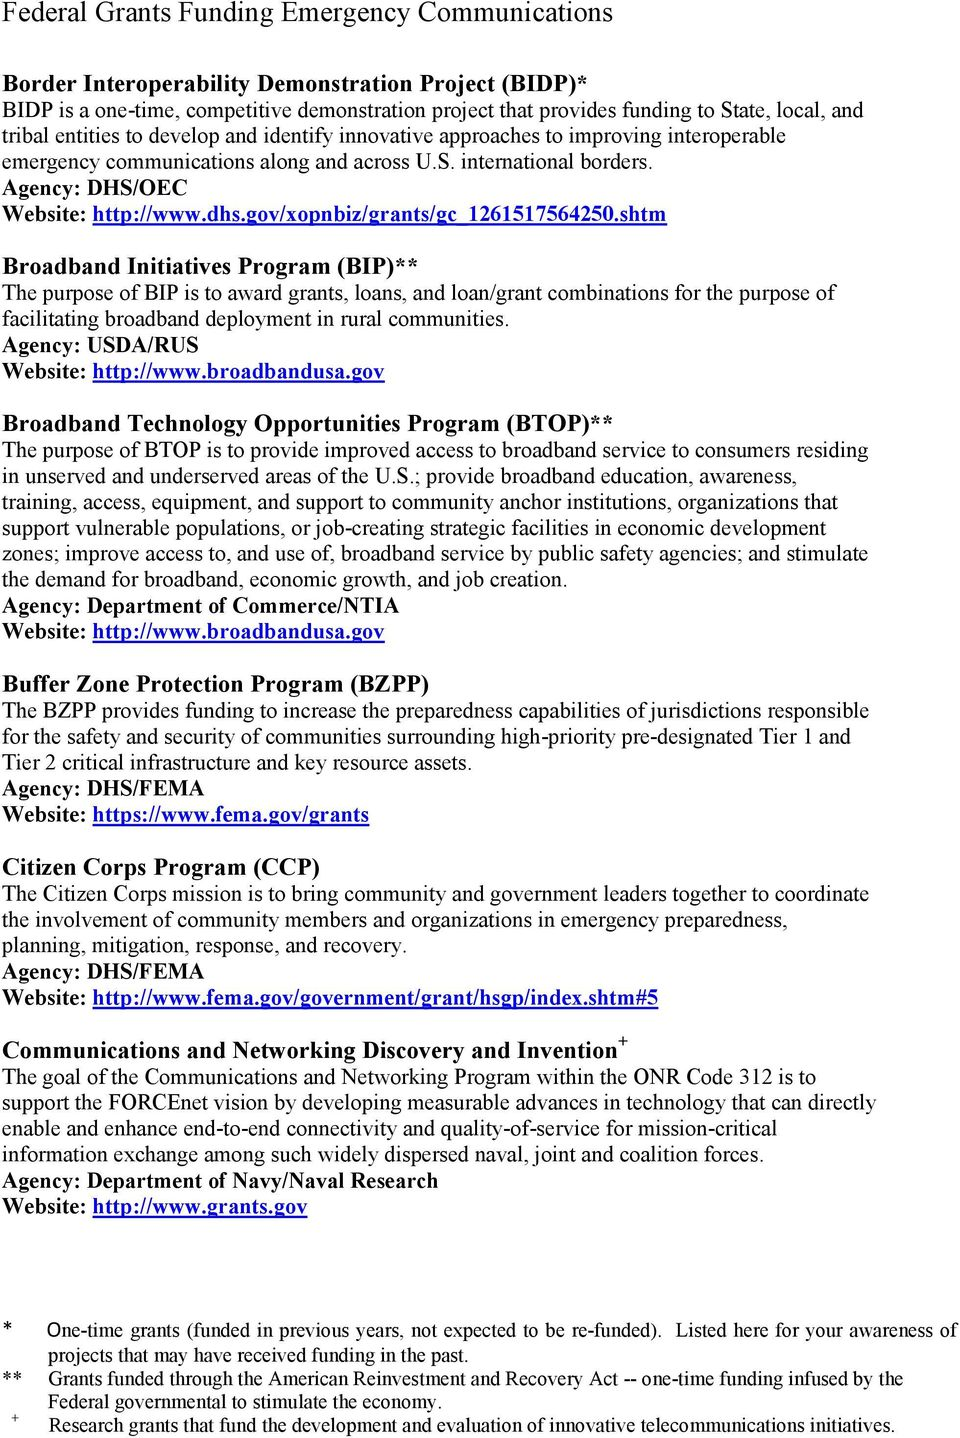 shtm Broadband Initiatives Program (BIP)** The purpose of BIP is to award grants, loans, and loan/grant combinations for the purpose of facilitating broadband deployment in rural communities.